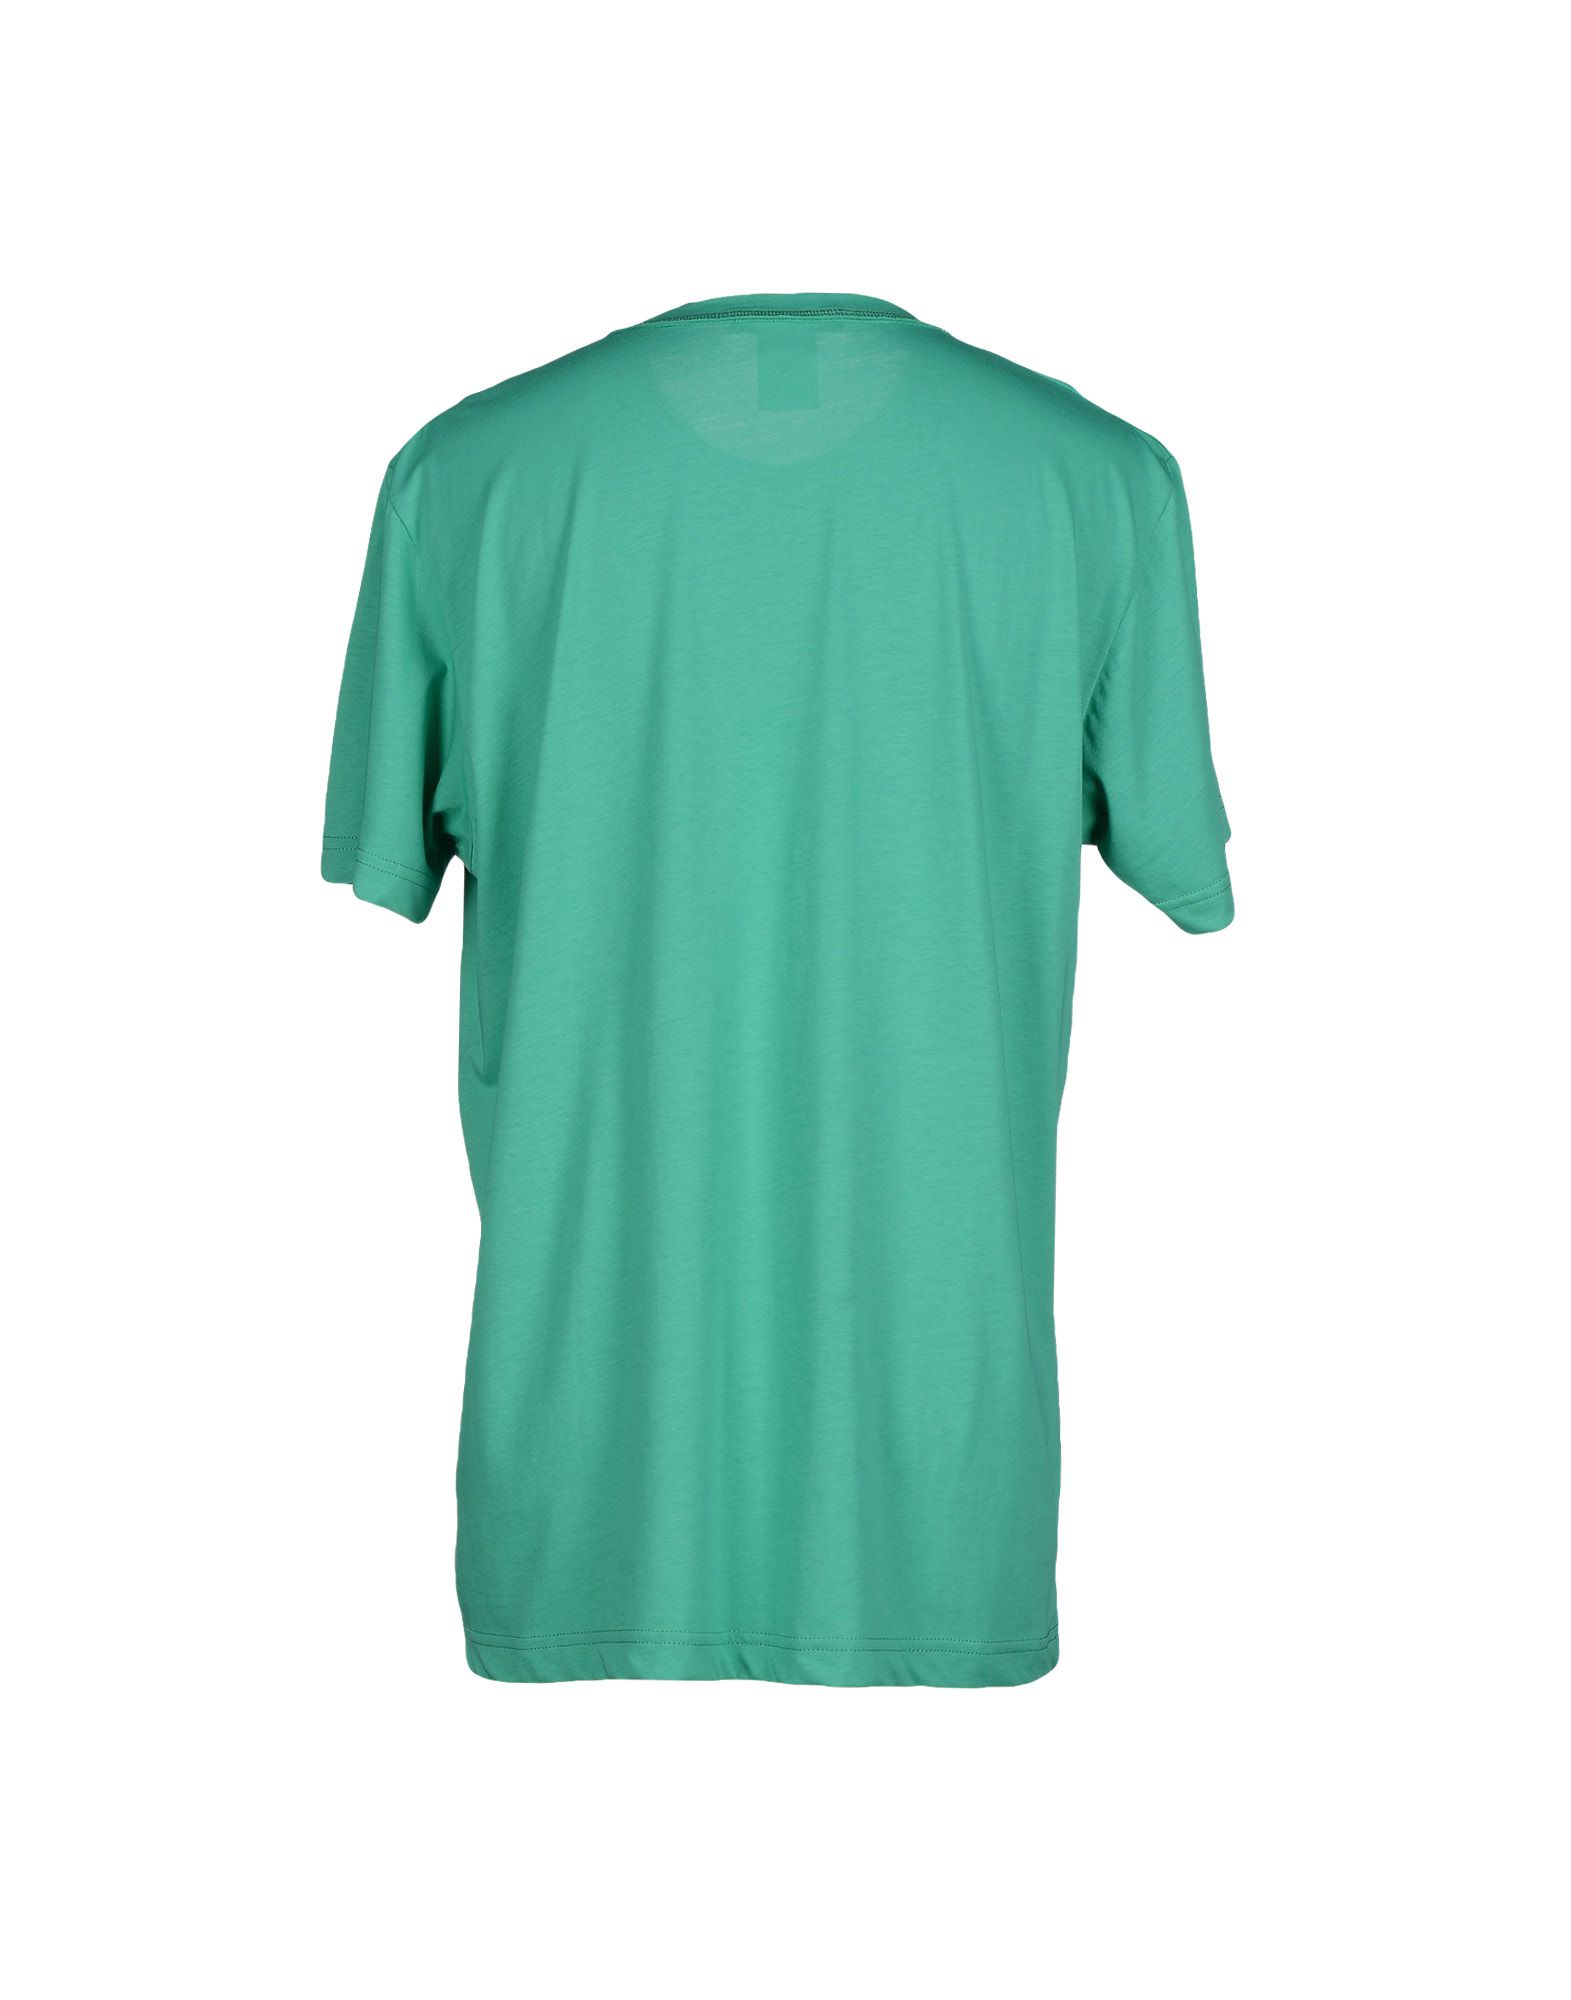 balmain t shirt in green for men light green lyst. Black Bedroom Furniture Sets. Home Design Ideas